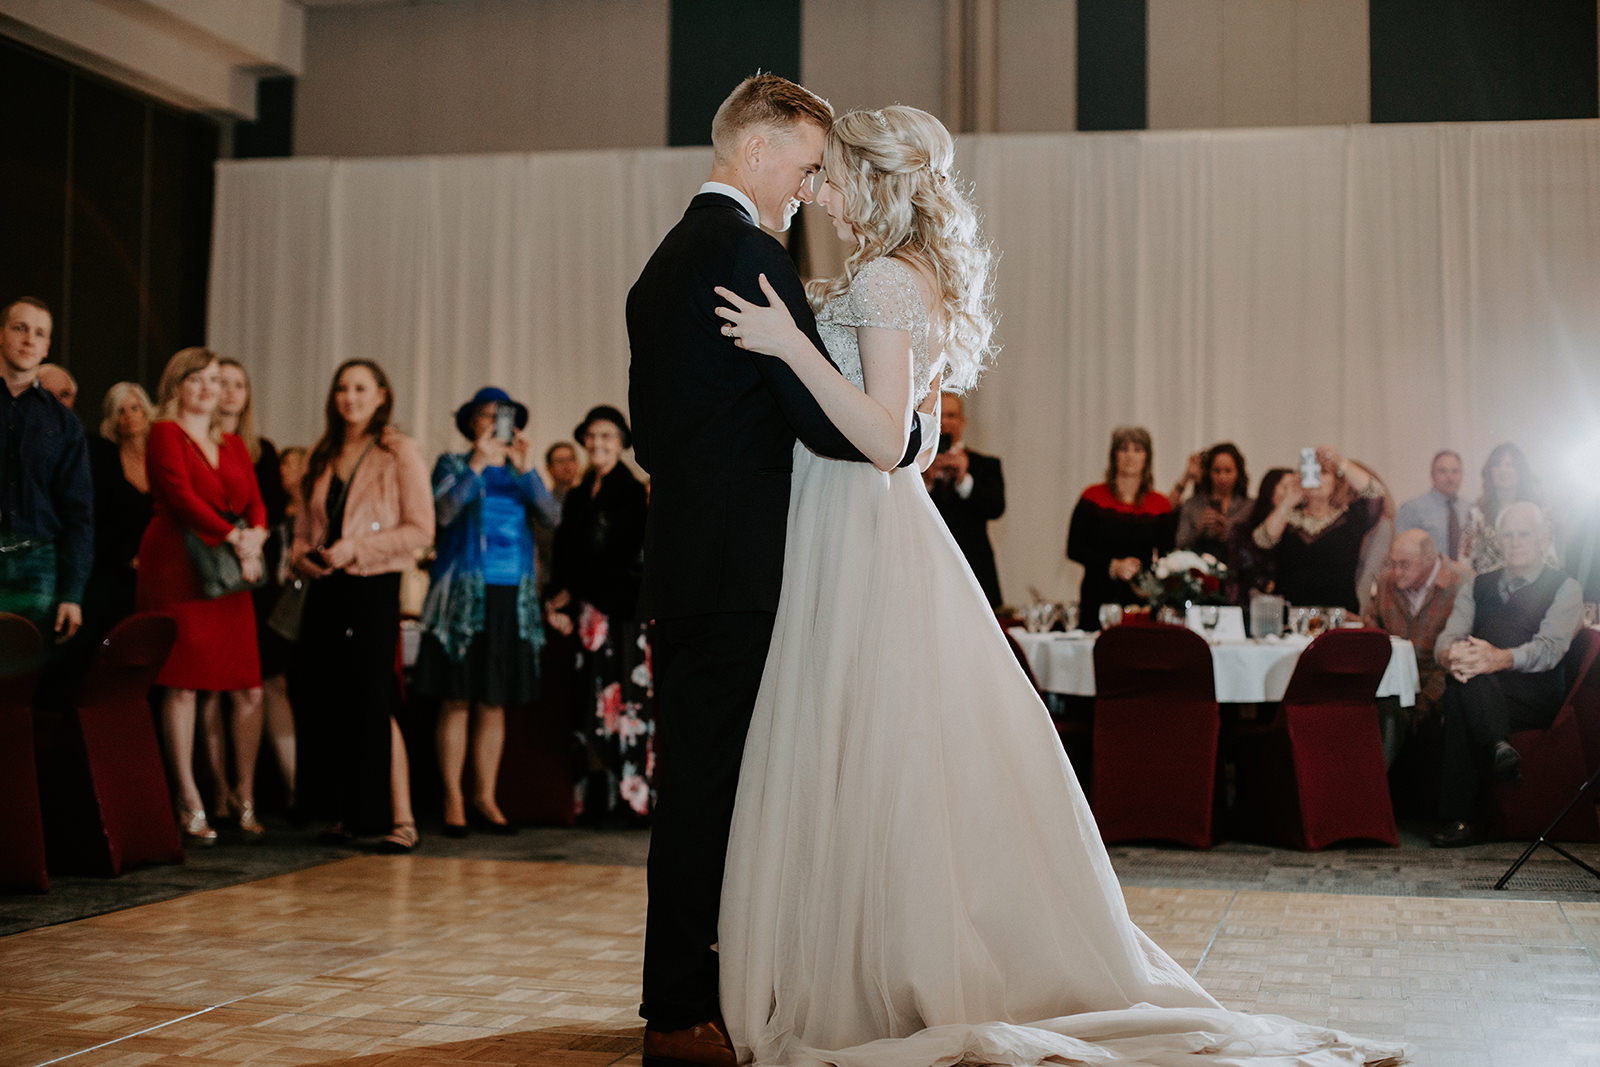 Bride and groom holding each other close during first dance with guest behind them